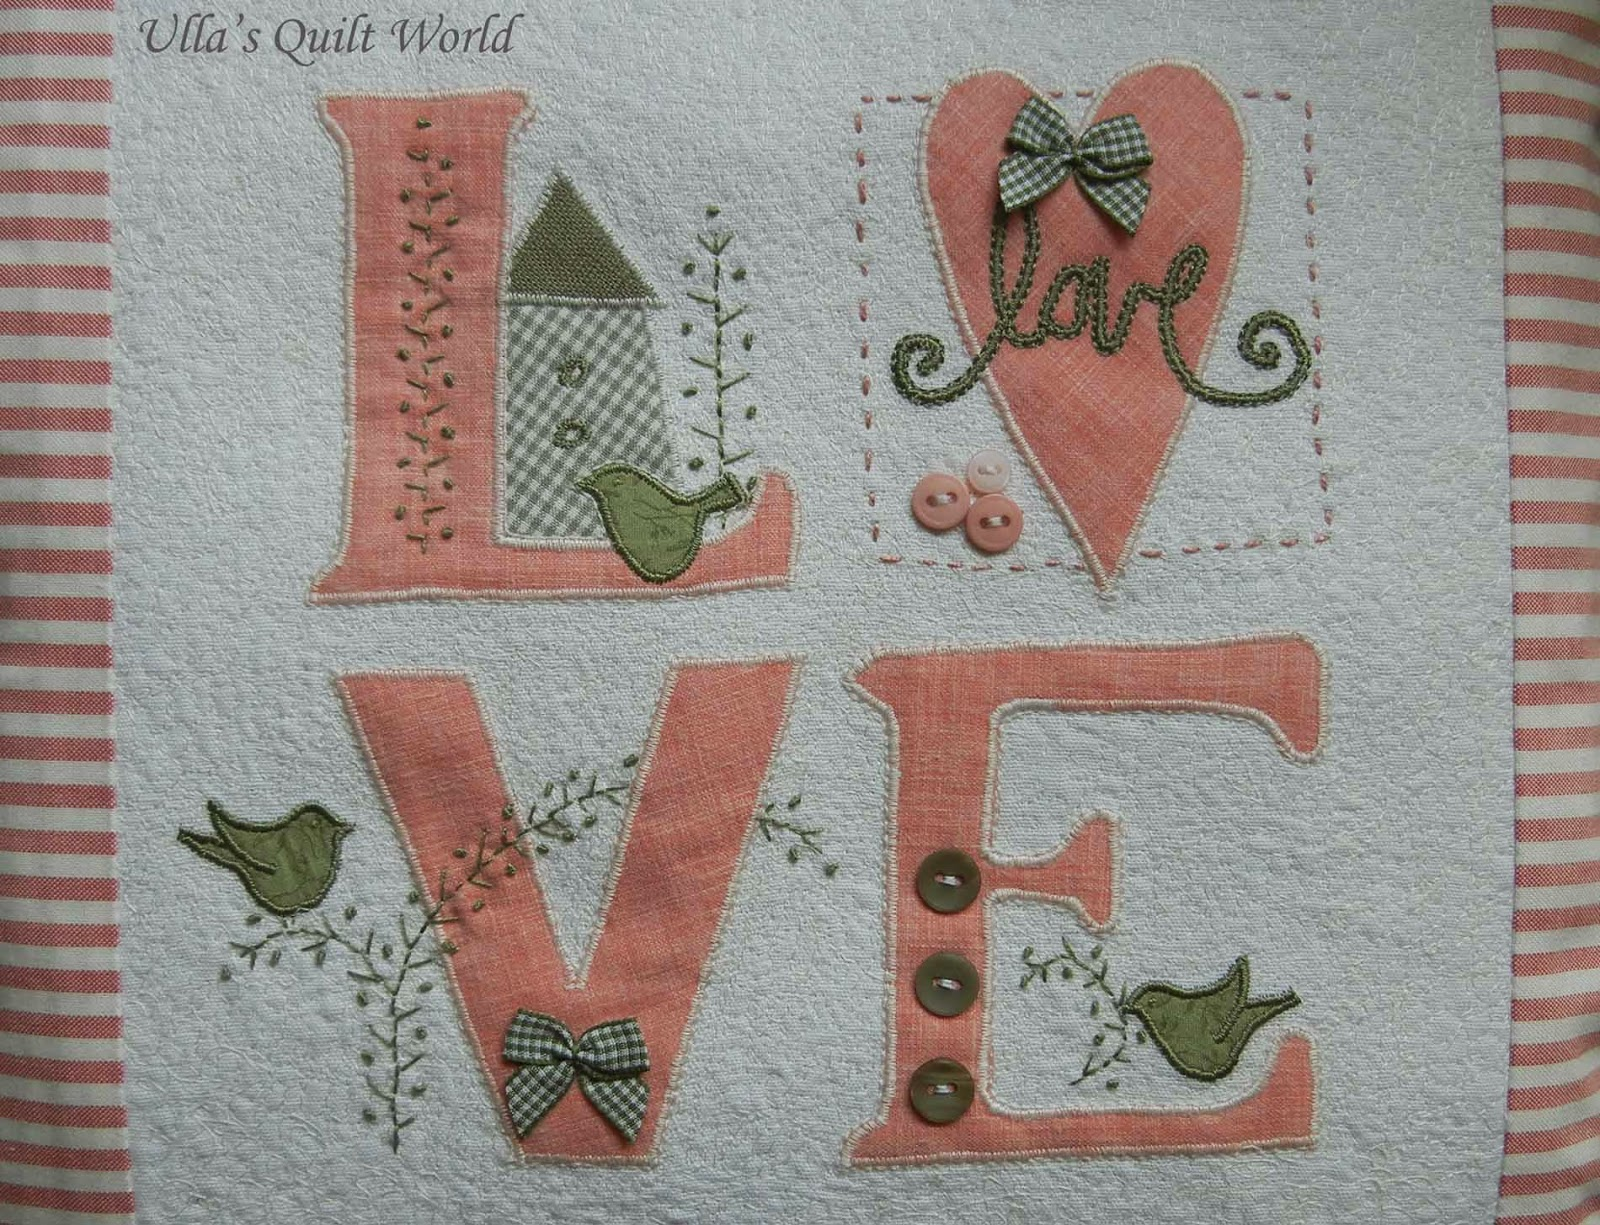 Love Design by Ulla from Ulla's Quilt World